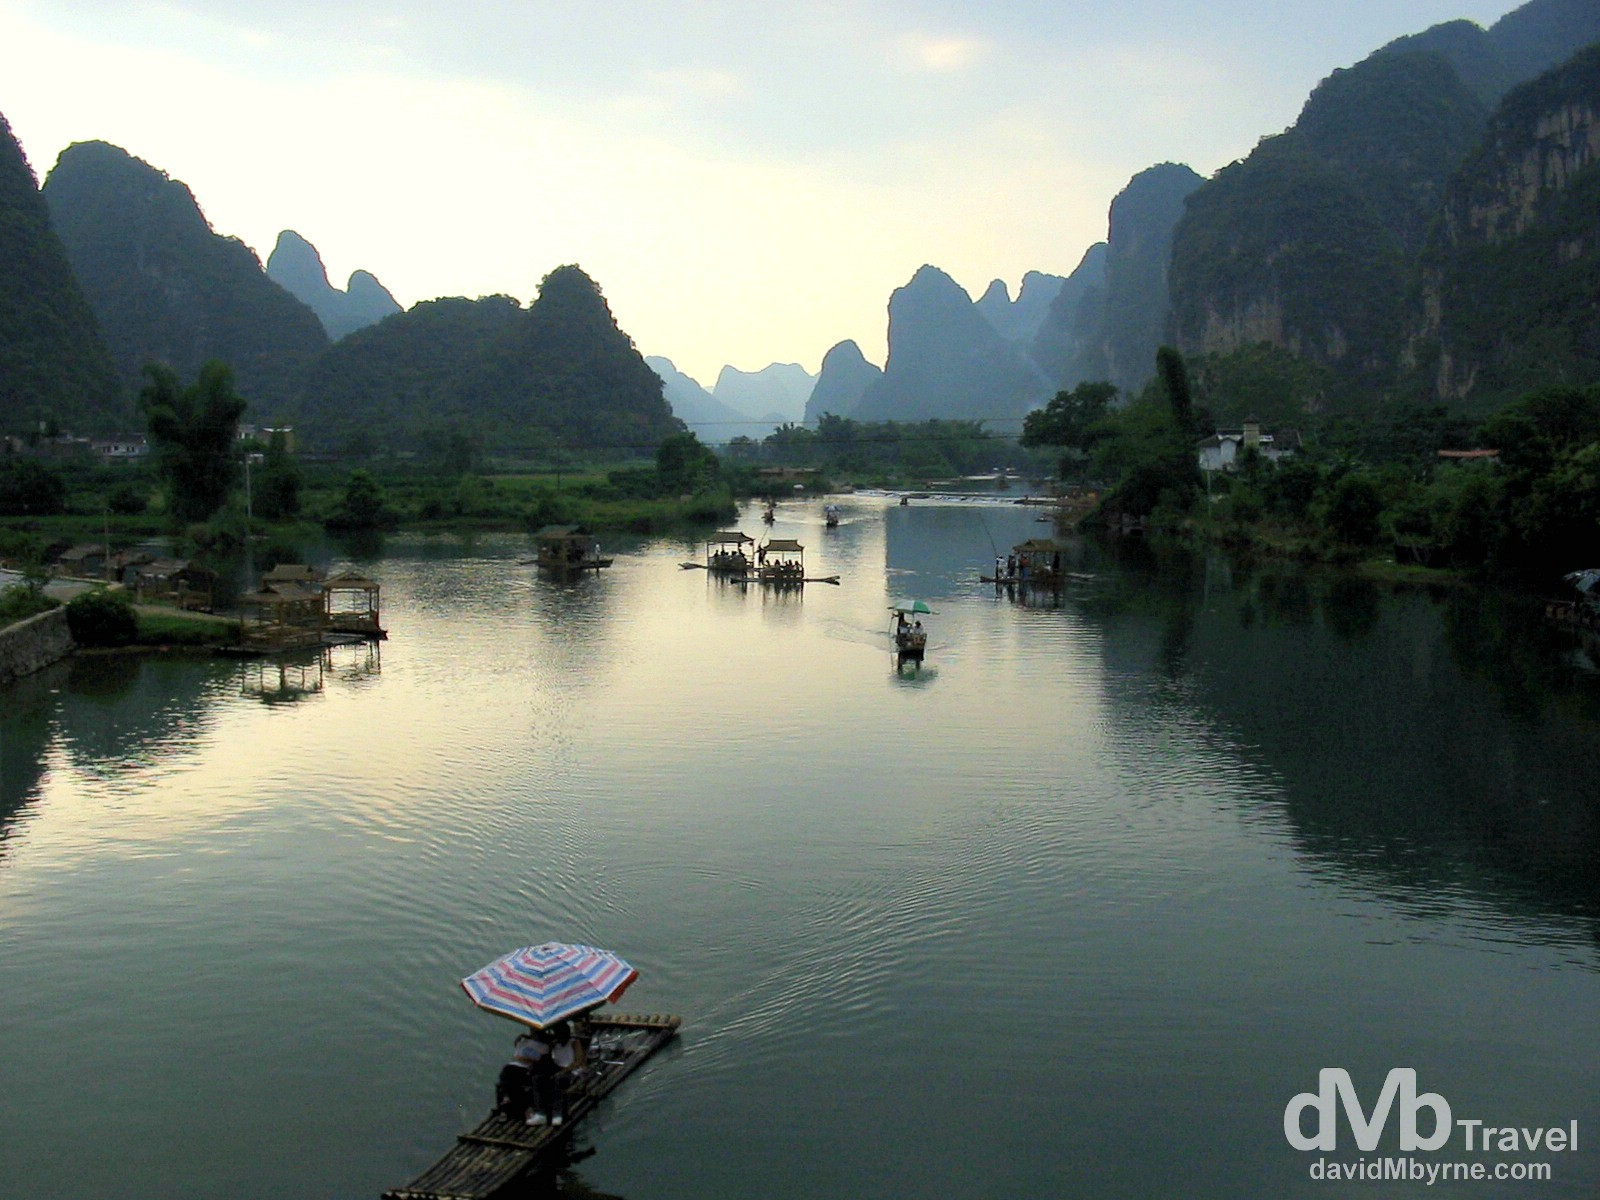 Getting punted near sunset on a section of the Li River outside Yangshuo, Guangxi Province, Southern China. September 11th, 2004.